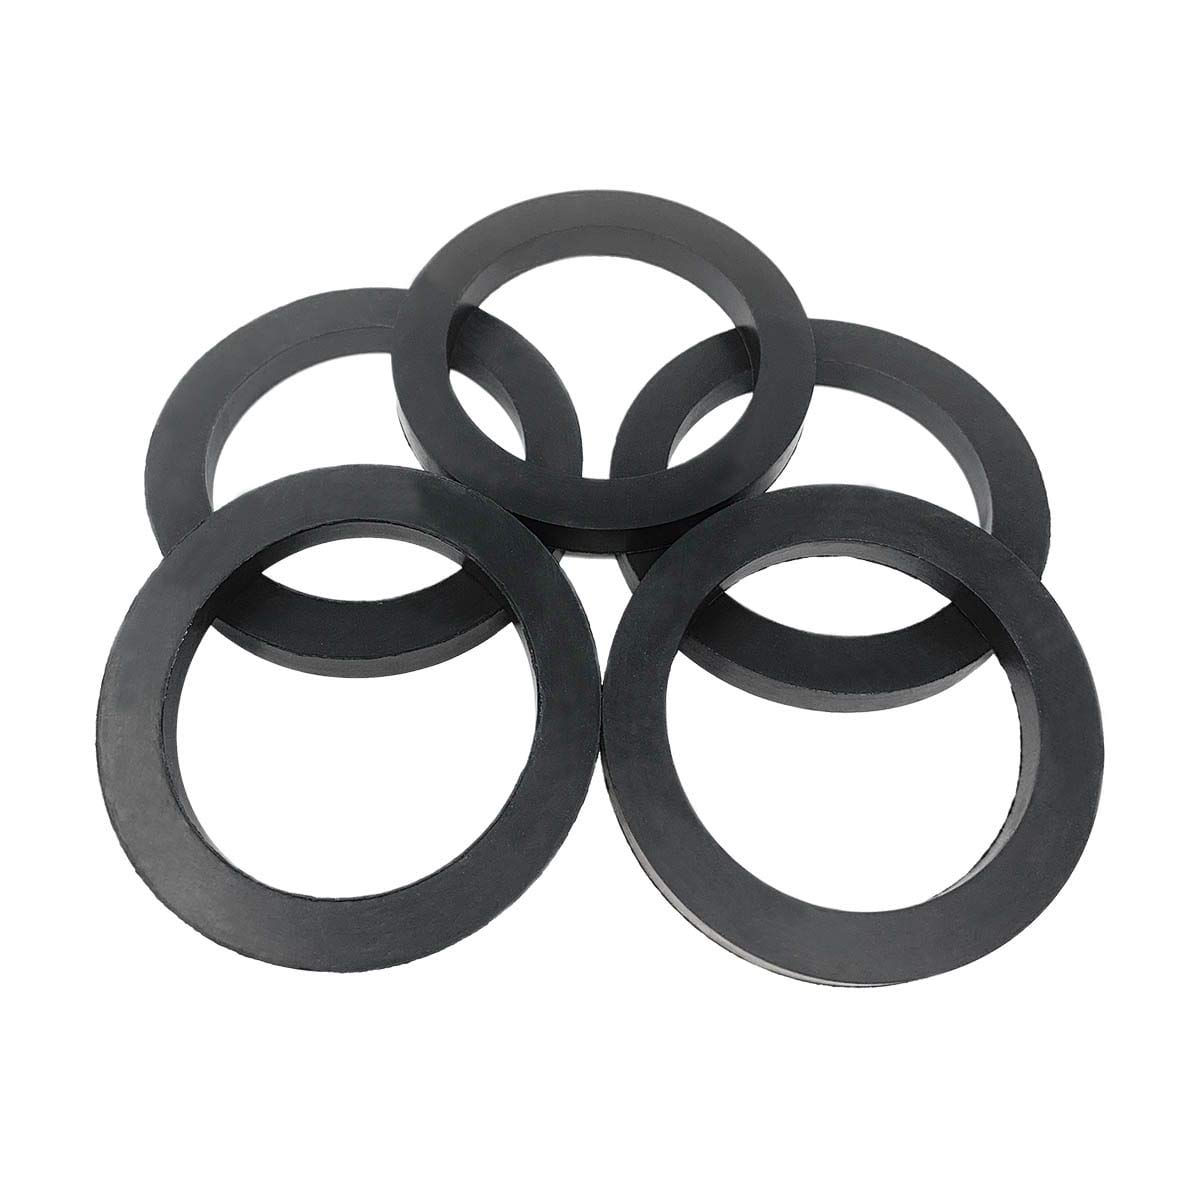 Black EPDM CAM and Groove 2 White Stripes on OD, 1 CAMLOCK Gasket 1 Gasket